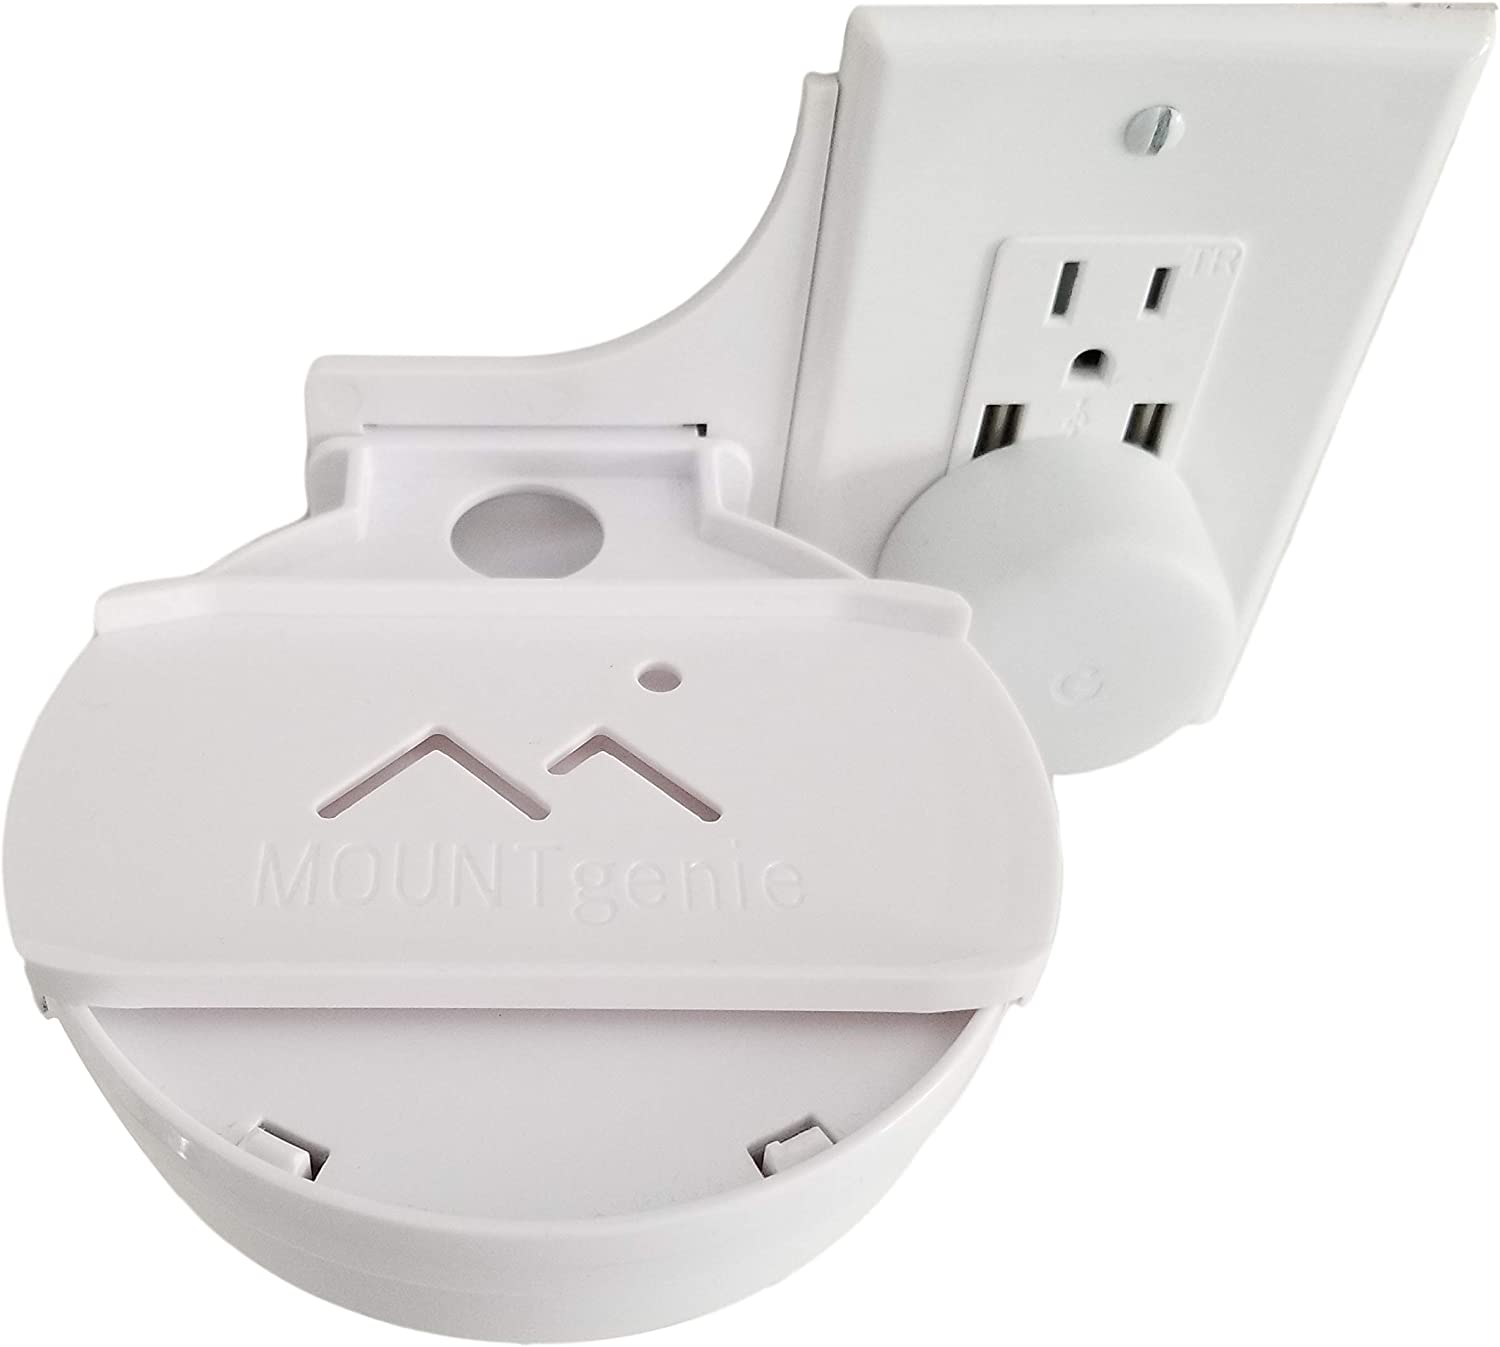 Easy Outlet Shelf Swivel Adapter for Google Home Hub Nest Hub by Mount Genie Easy Outlet Shelf Sold Separately. The Best Mounting Solution for The Google Home Hub in Kitchen and Bathrooms